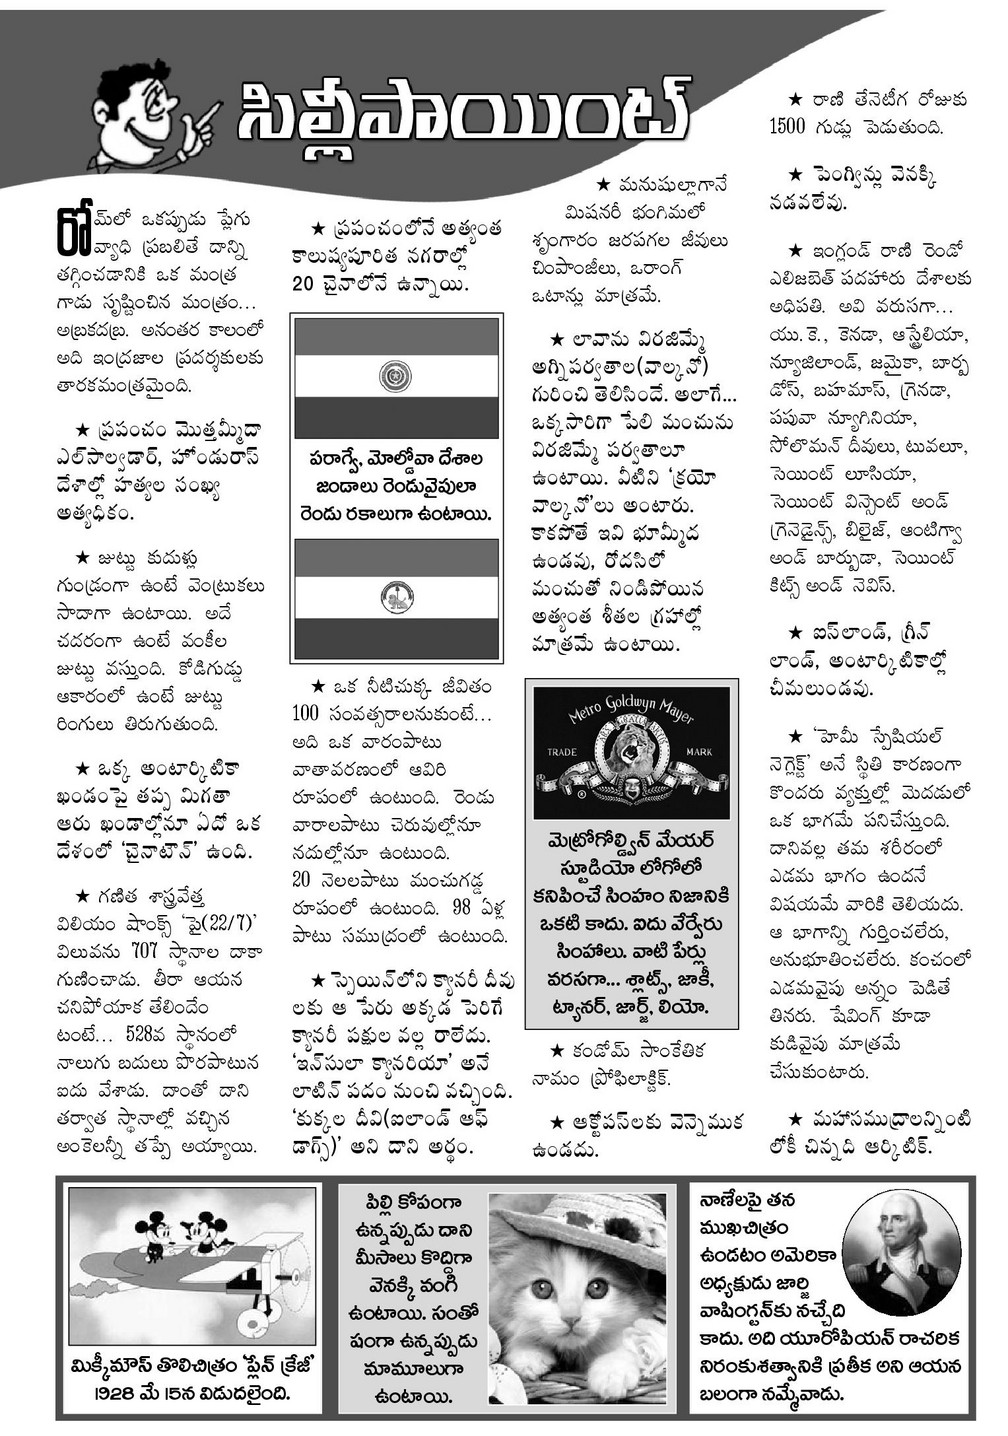 Eenadu Sunday Book 14 November 2010